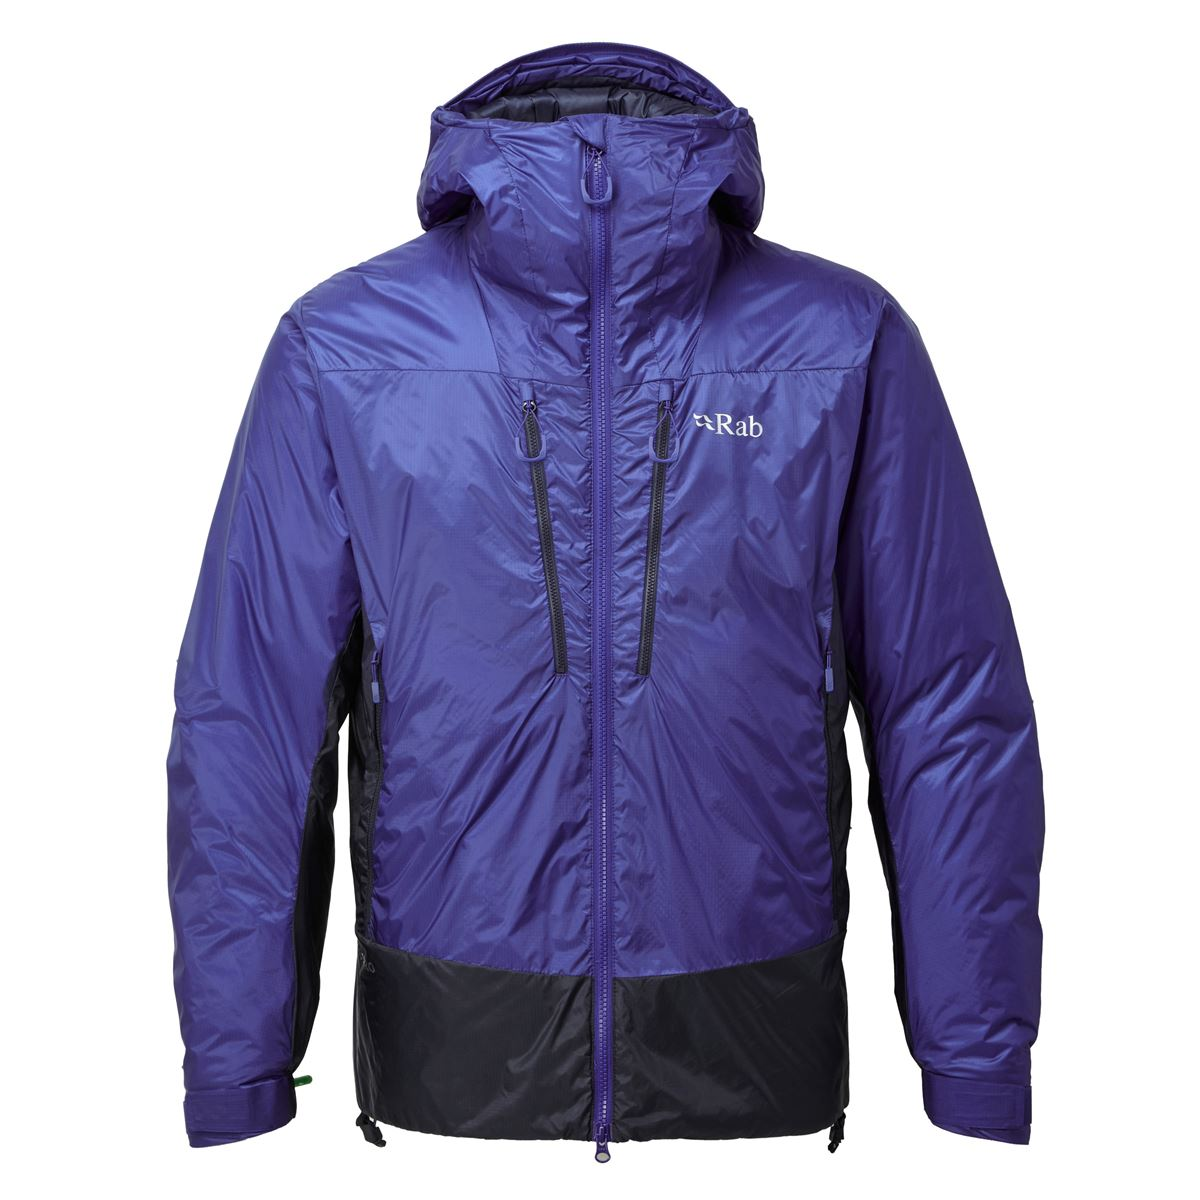 Rab Men S Photon Pro Jacket Needle Sports Ltd